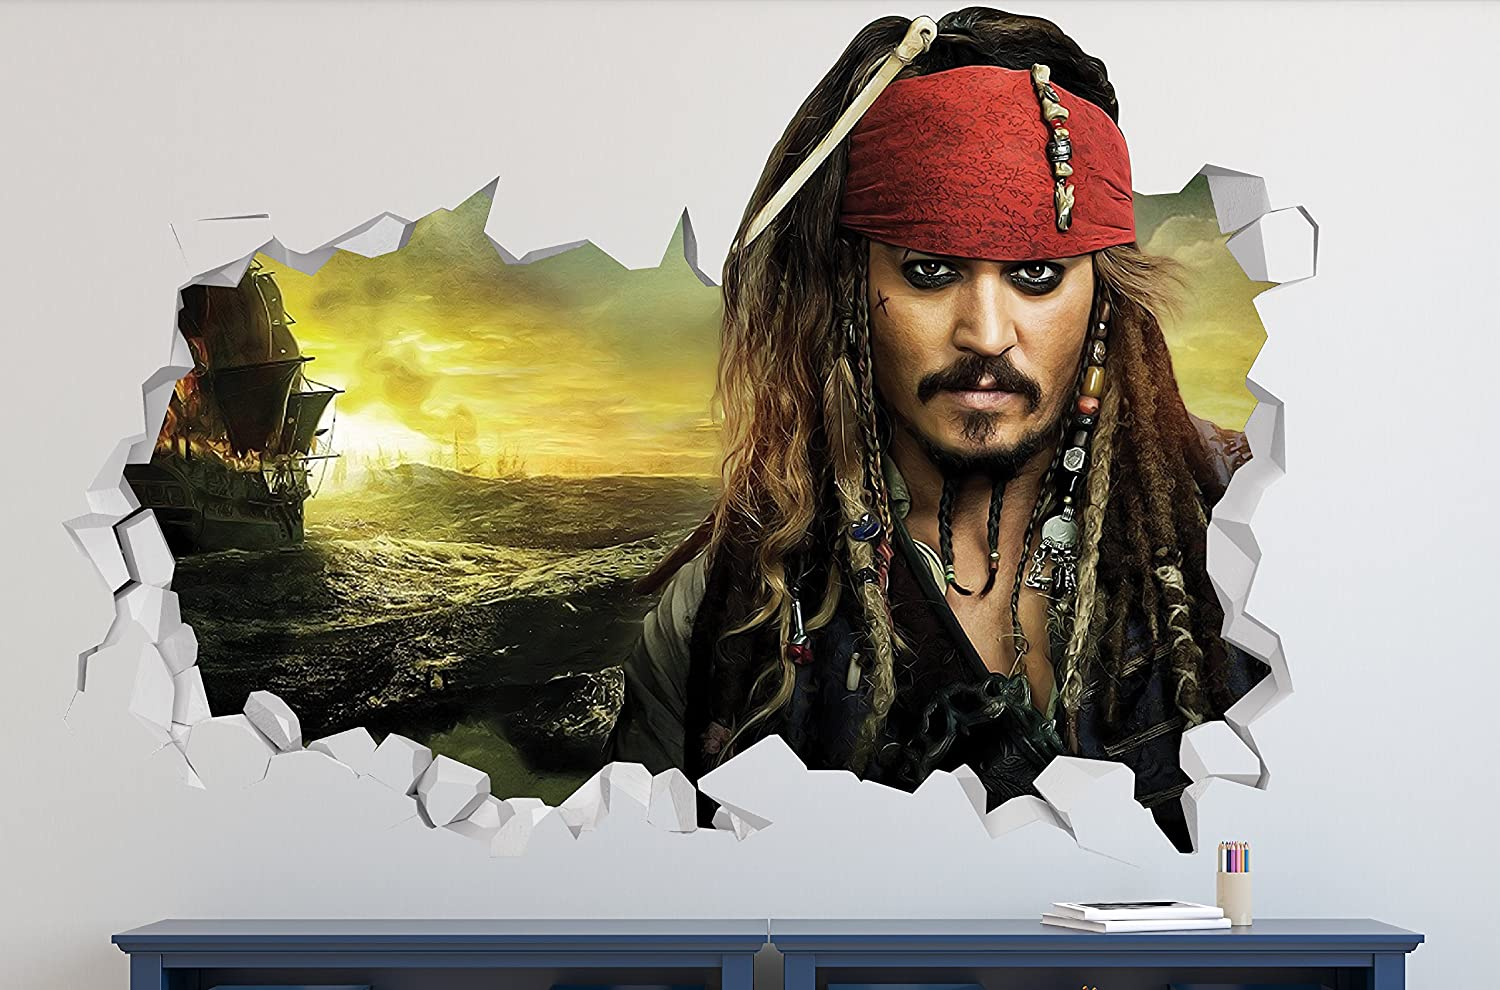 "Pirates of Caribbean Captain Jack Sparrow Wall Decal Smashed 3D Sticker Vinyl Decor Mural Kids Movie - Broken Wall - 3D Designs - LS51 (Small (Wide 22"" x 12"" Height))"